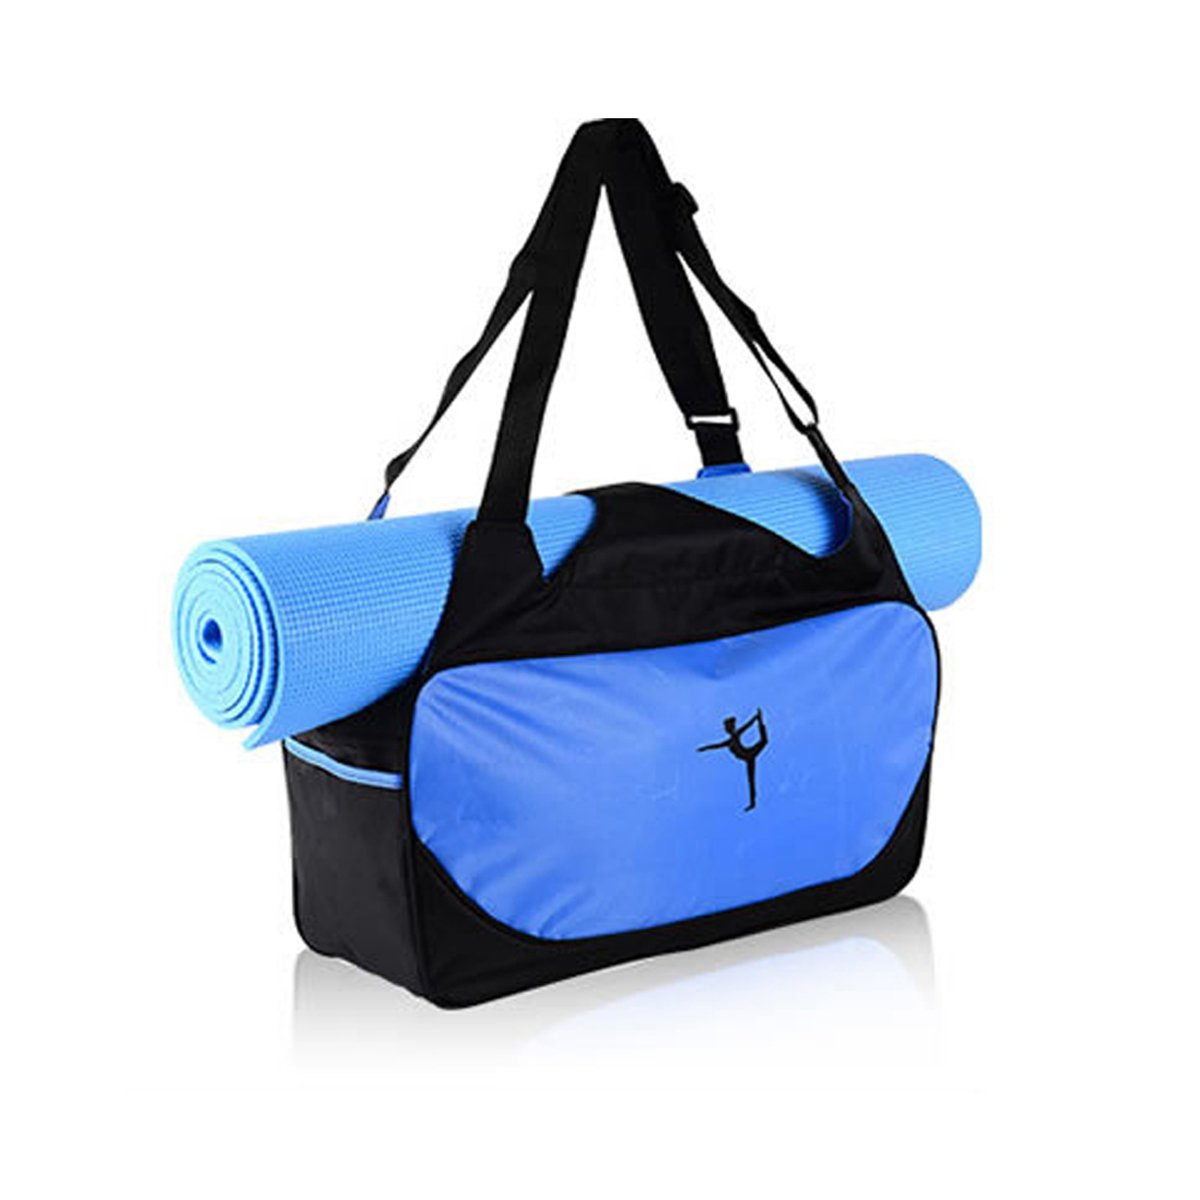 Yoga Mat Bag Tote Holder Waterproof Sport Duffle Carrying Gym Fitness Handbag Workout Sports Training Women Girl urxcellent